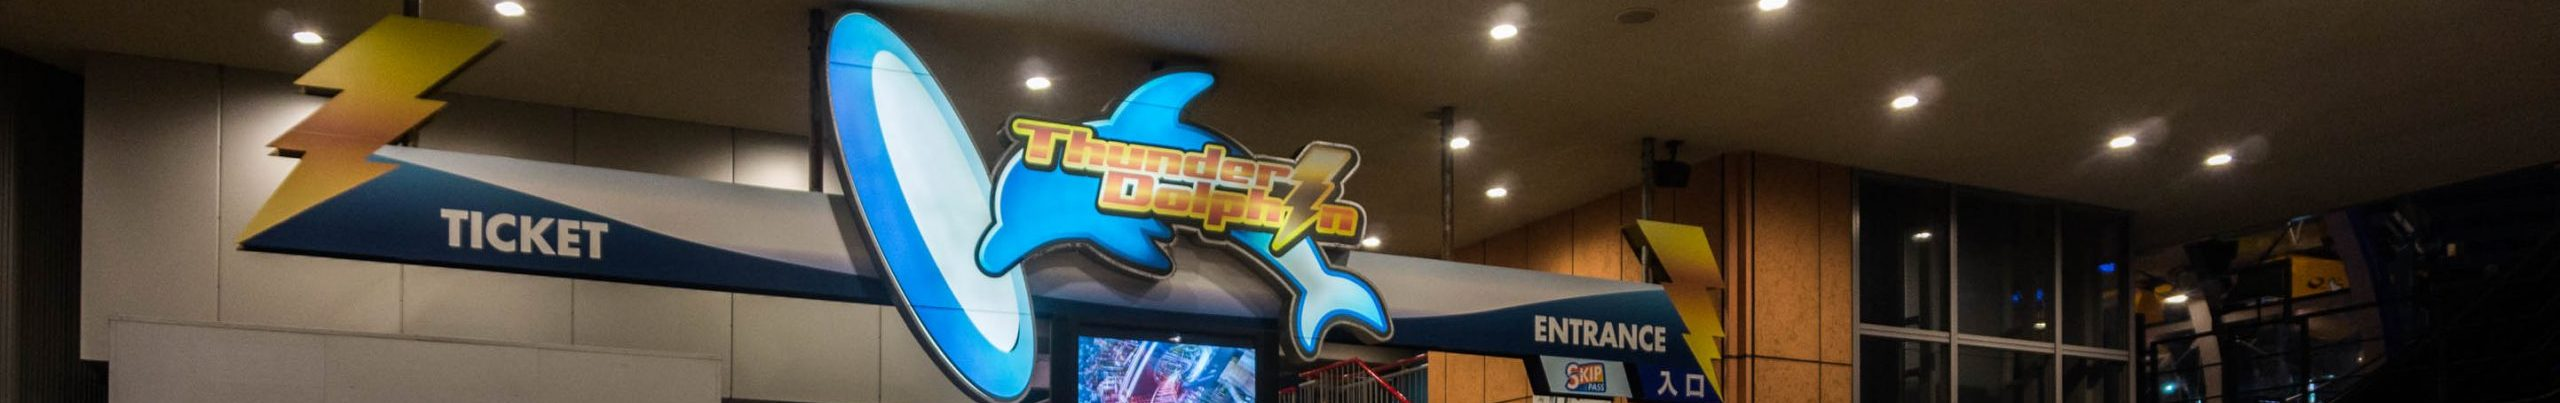 Kategorie: Tokyo Dome City Attractions